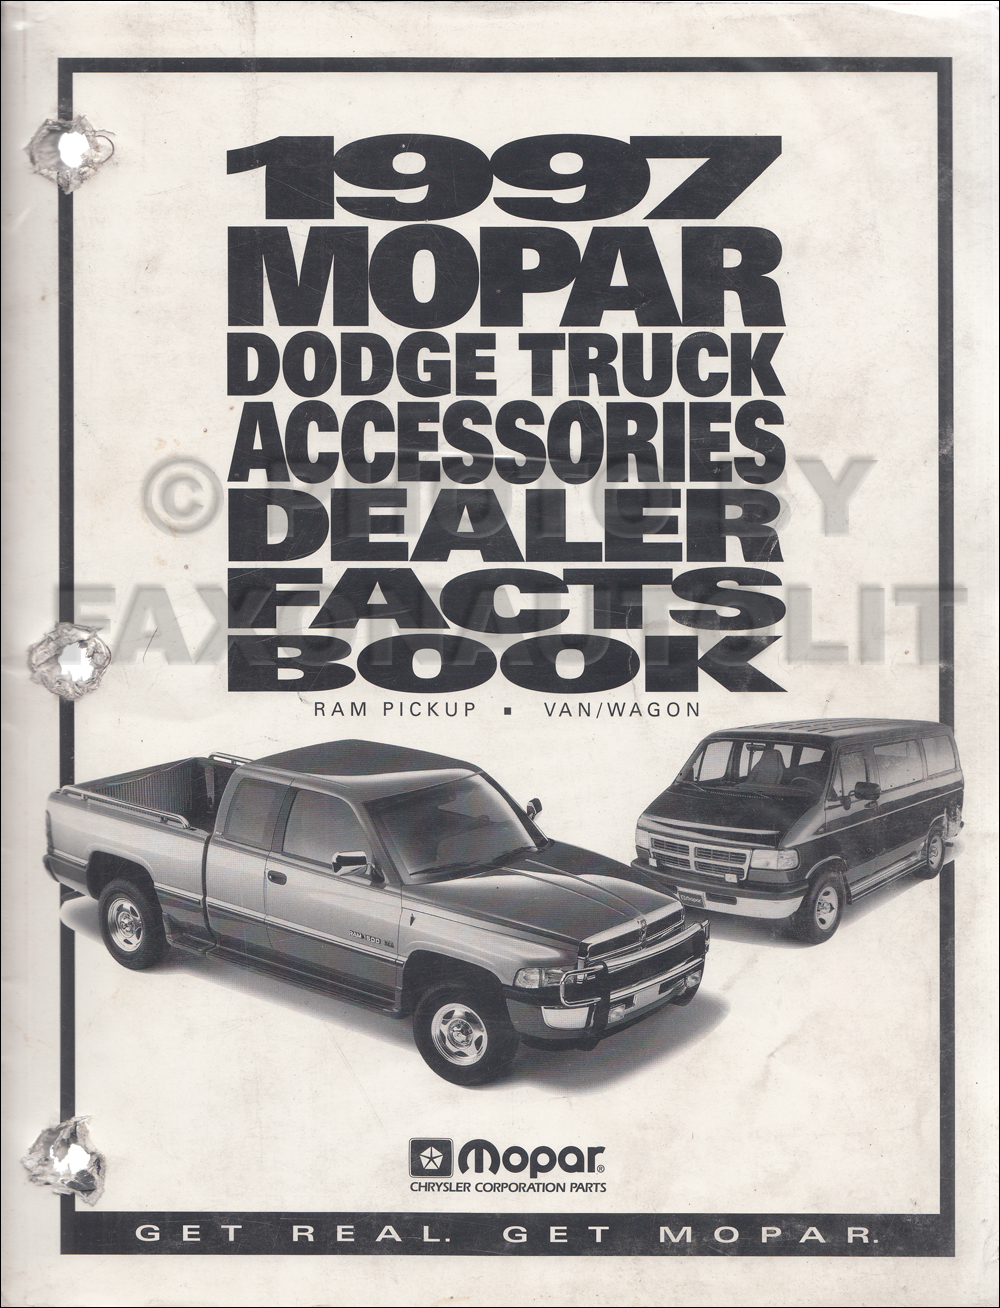 1997 Dodge Truck Accessories Dealer Facts Book Original